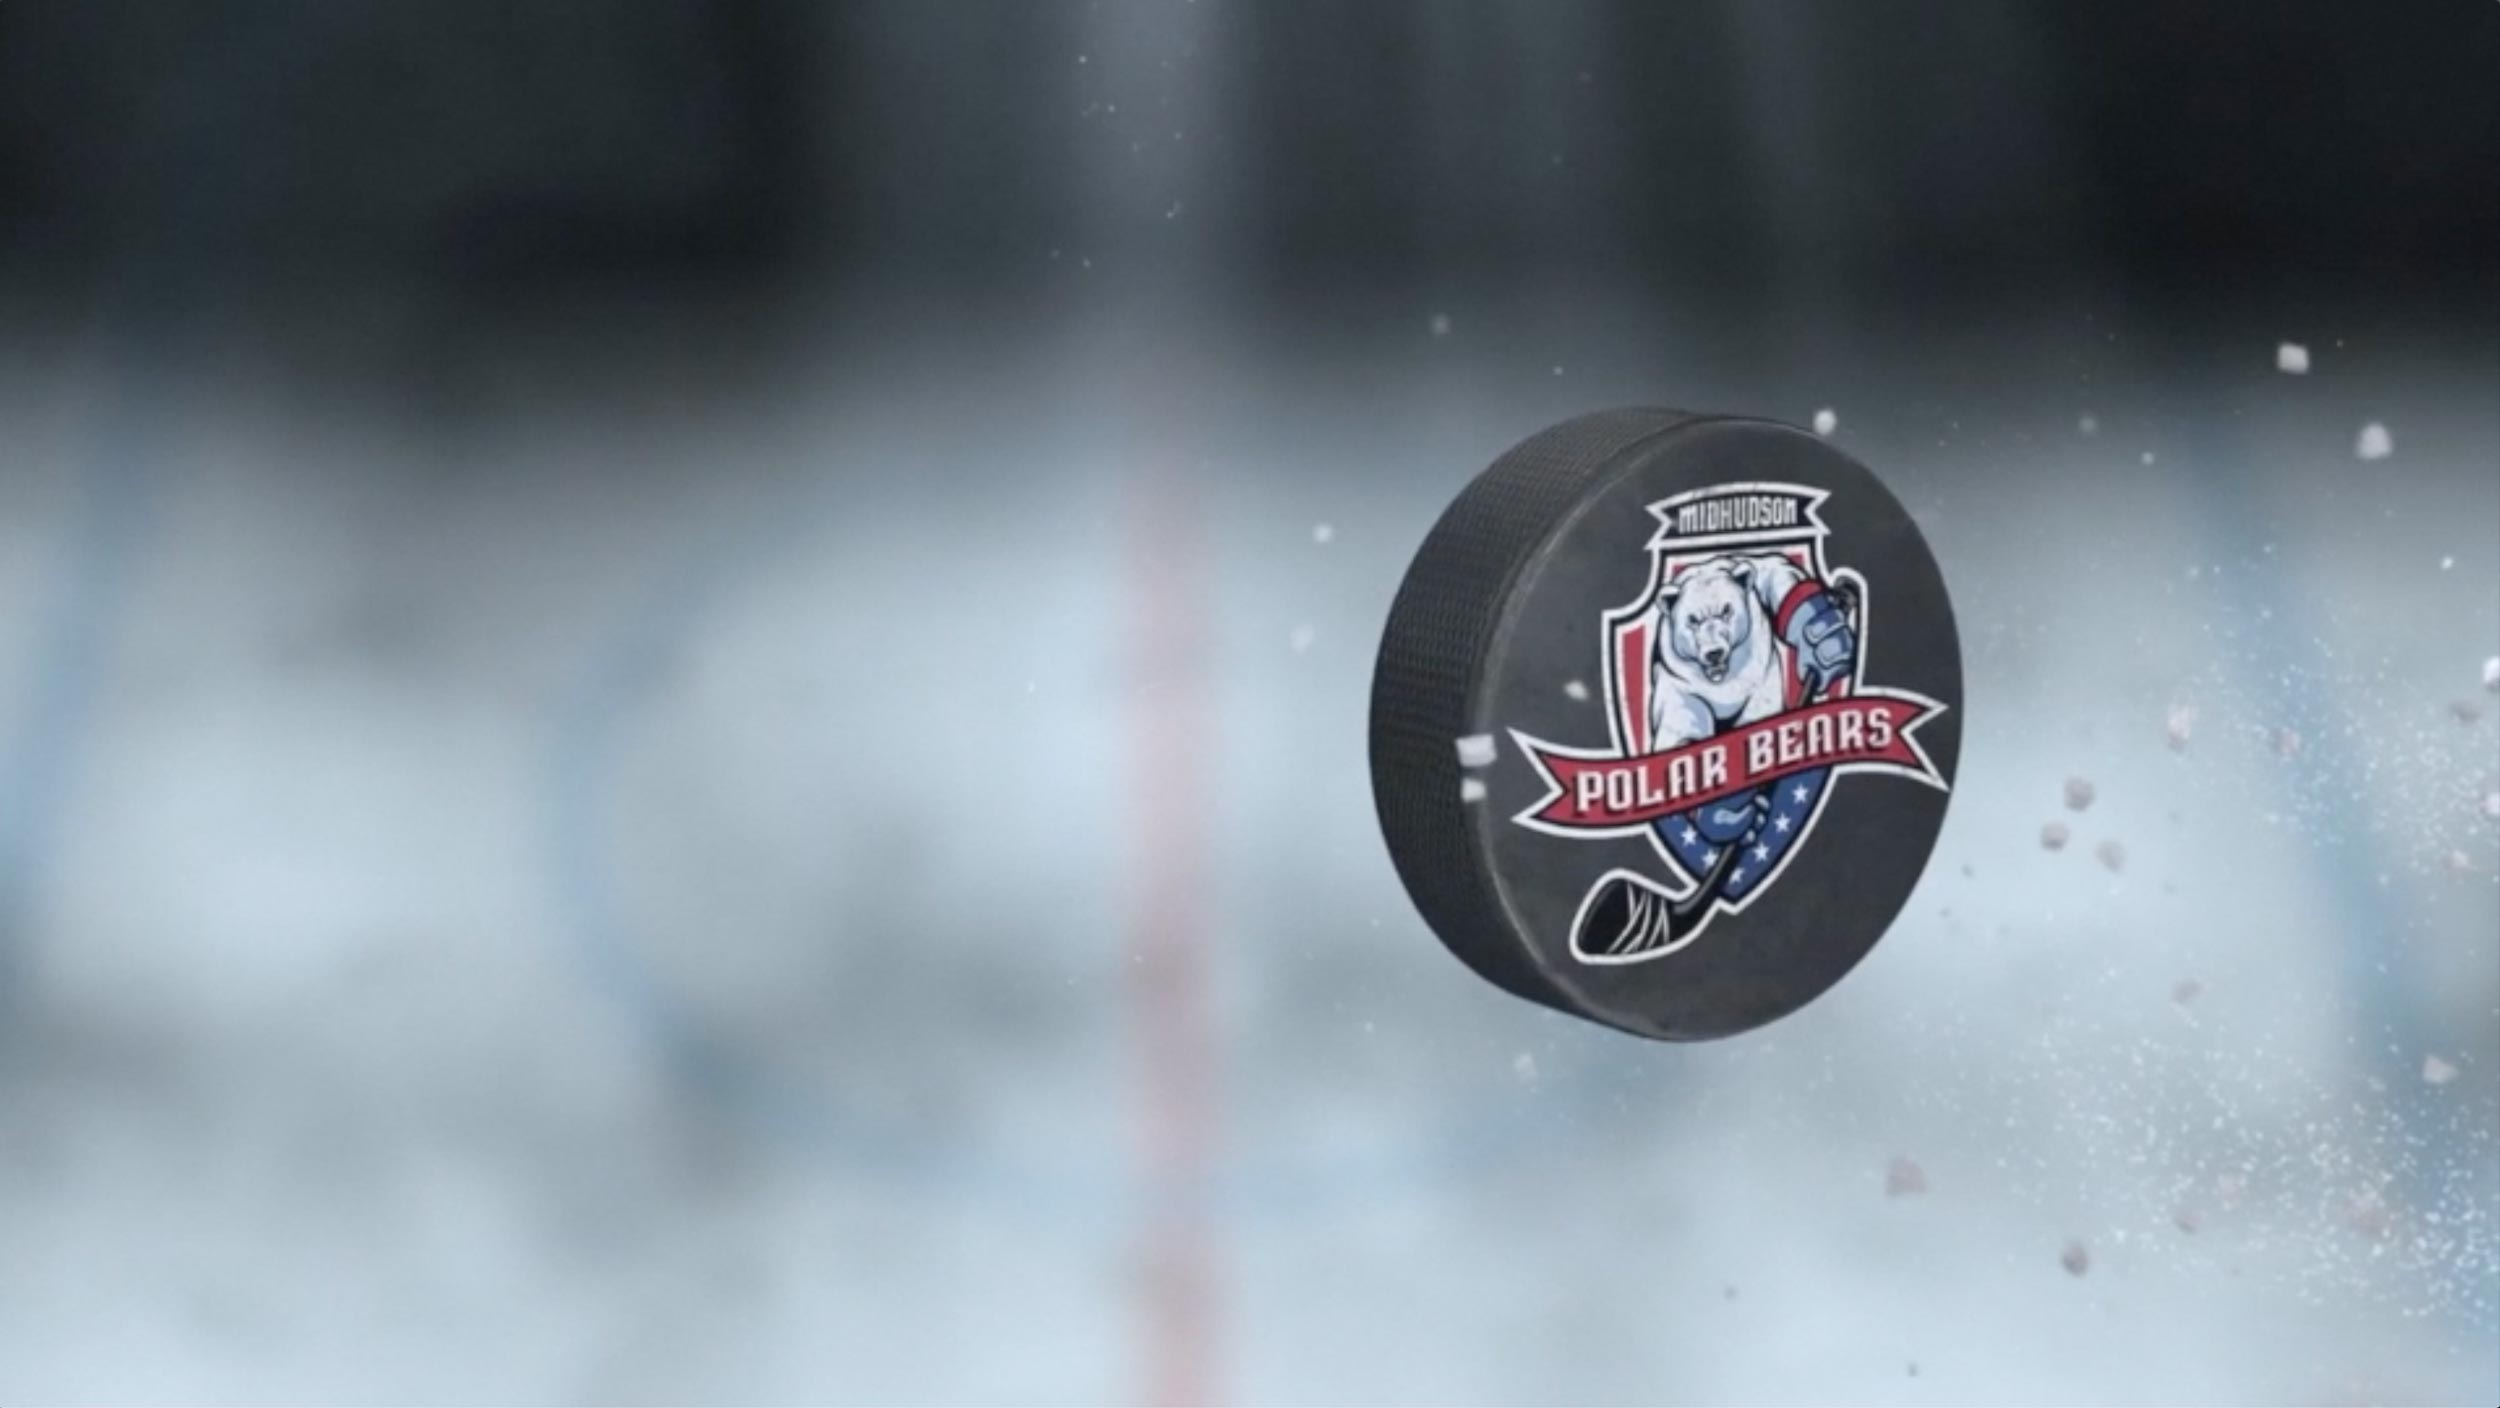 hockey puck with logo